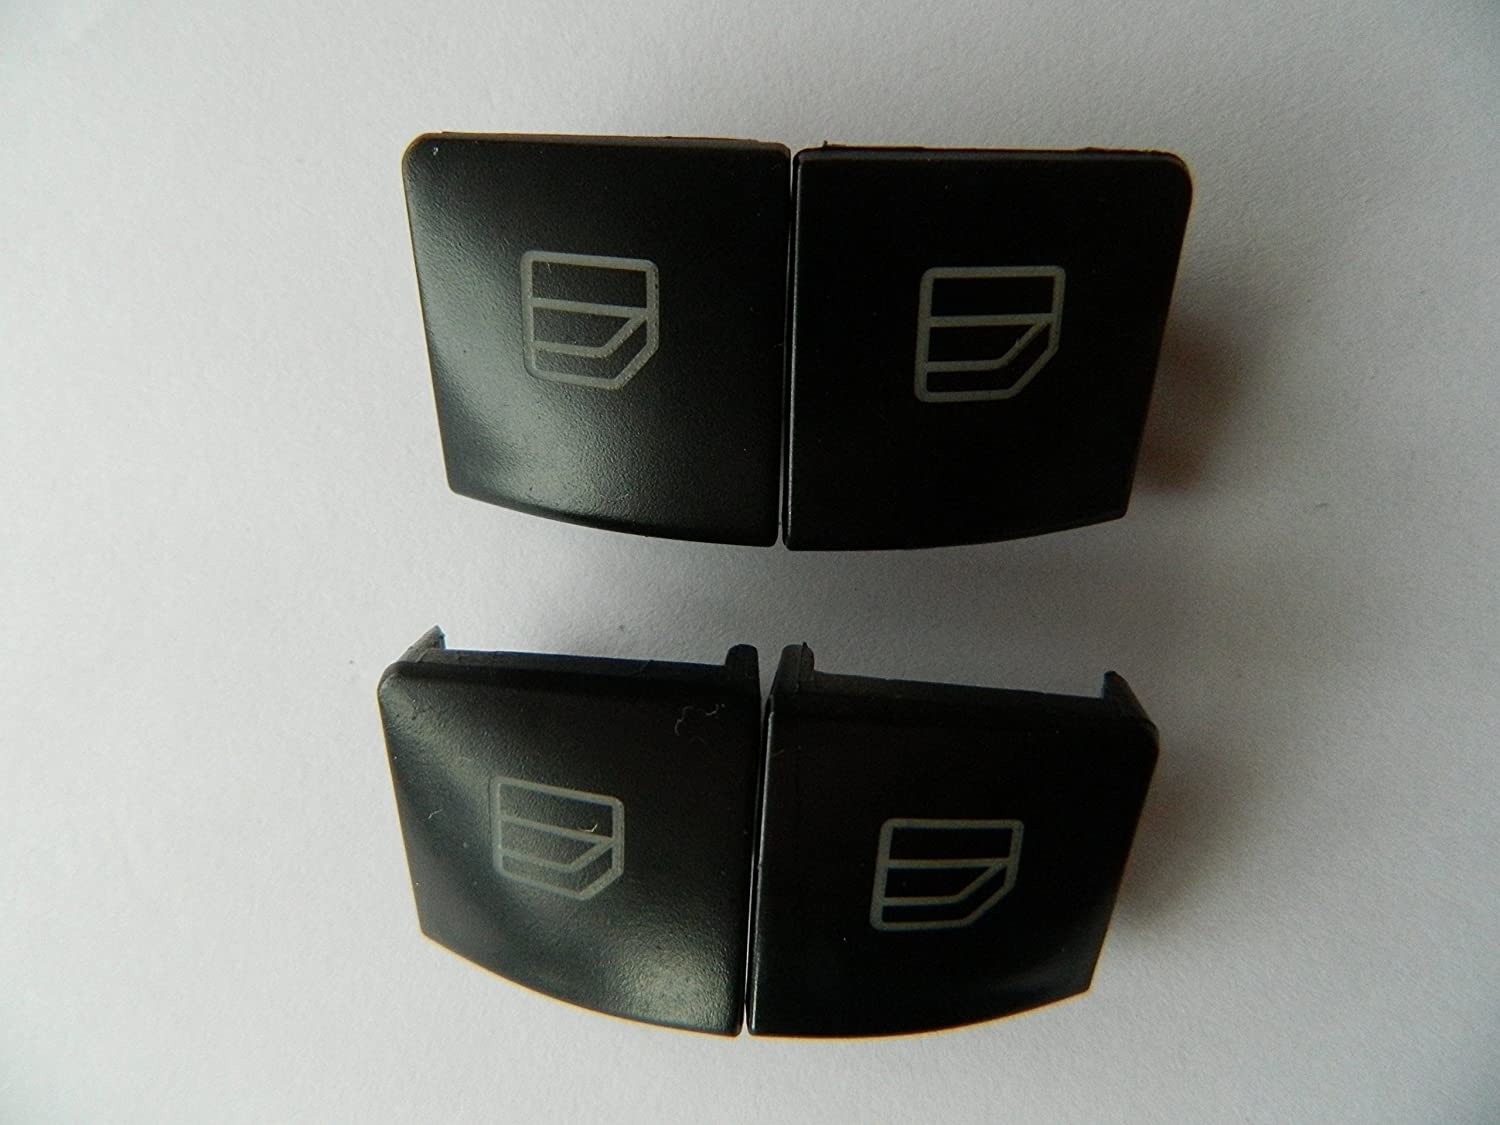 Driver Side for Mercedes A 204 905 5402 Bross BDP109 2 Pieces Window Switch Button Cover Set Front Left Door